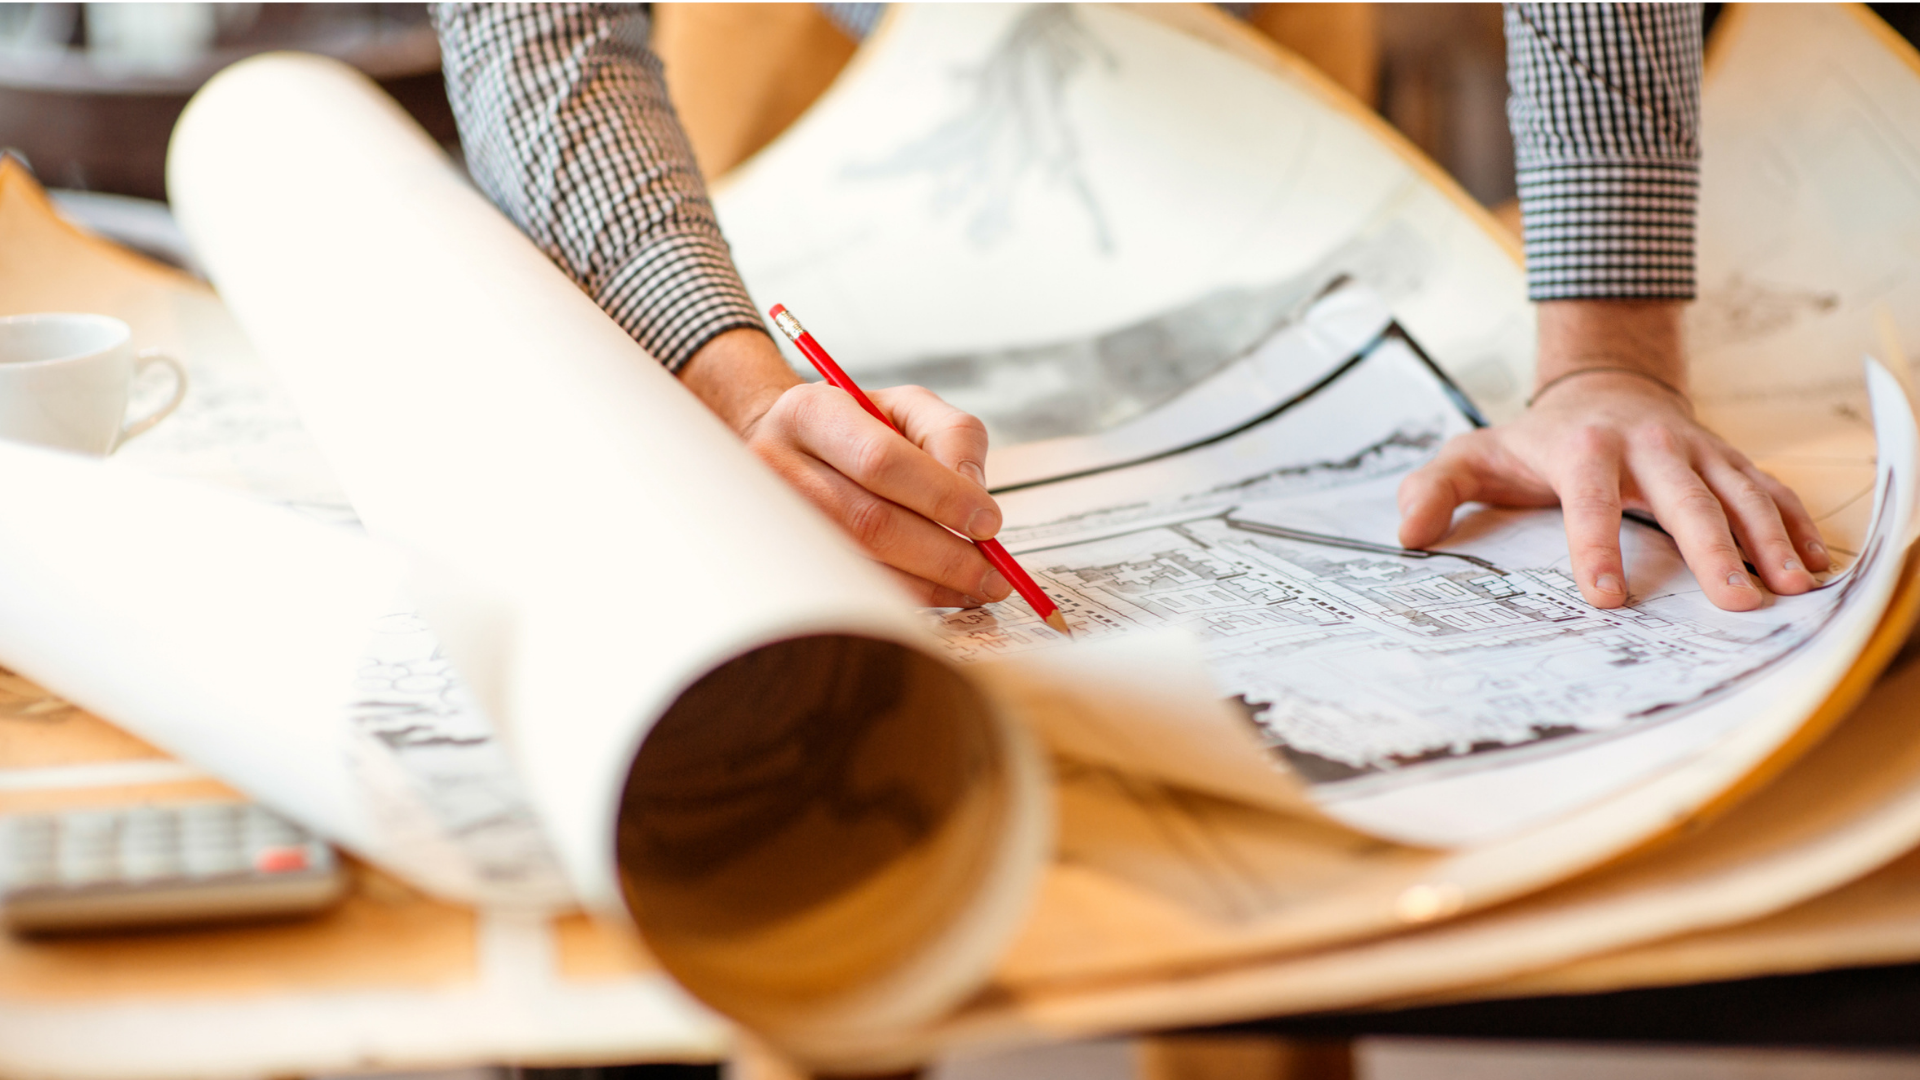 Best Online Master's Architecture - featured image of architect working on a project blueprint